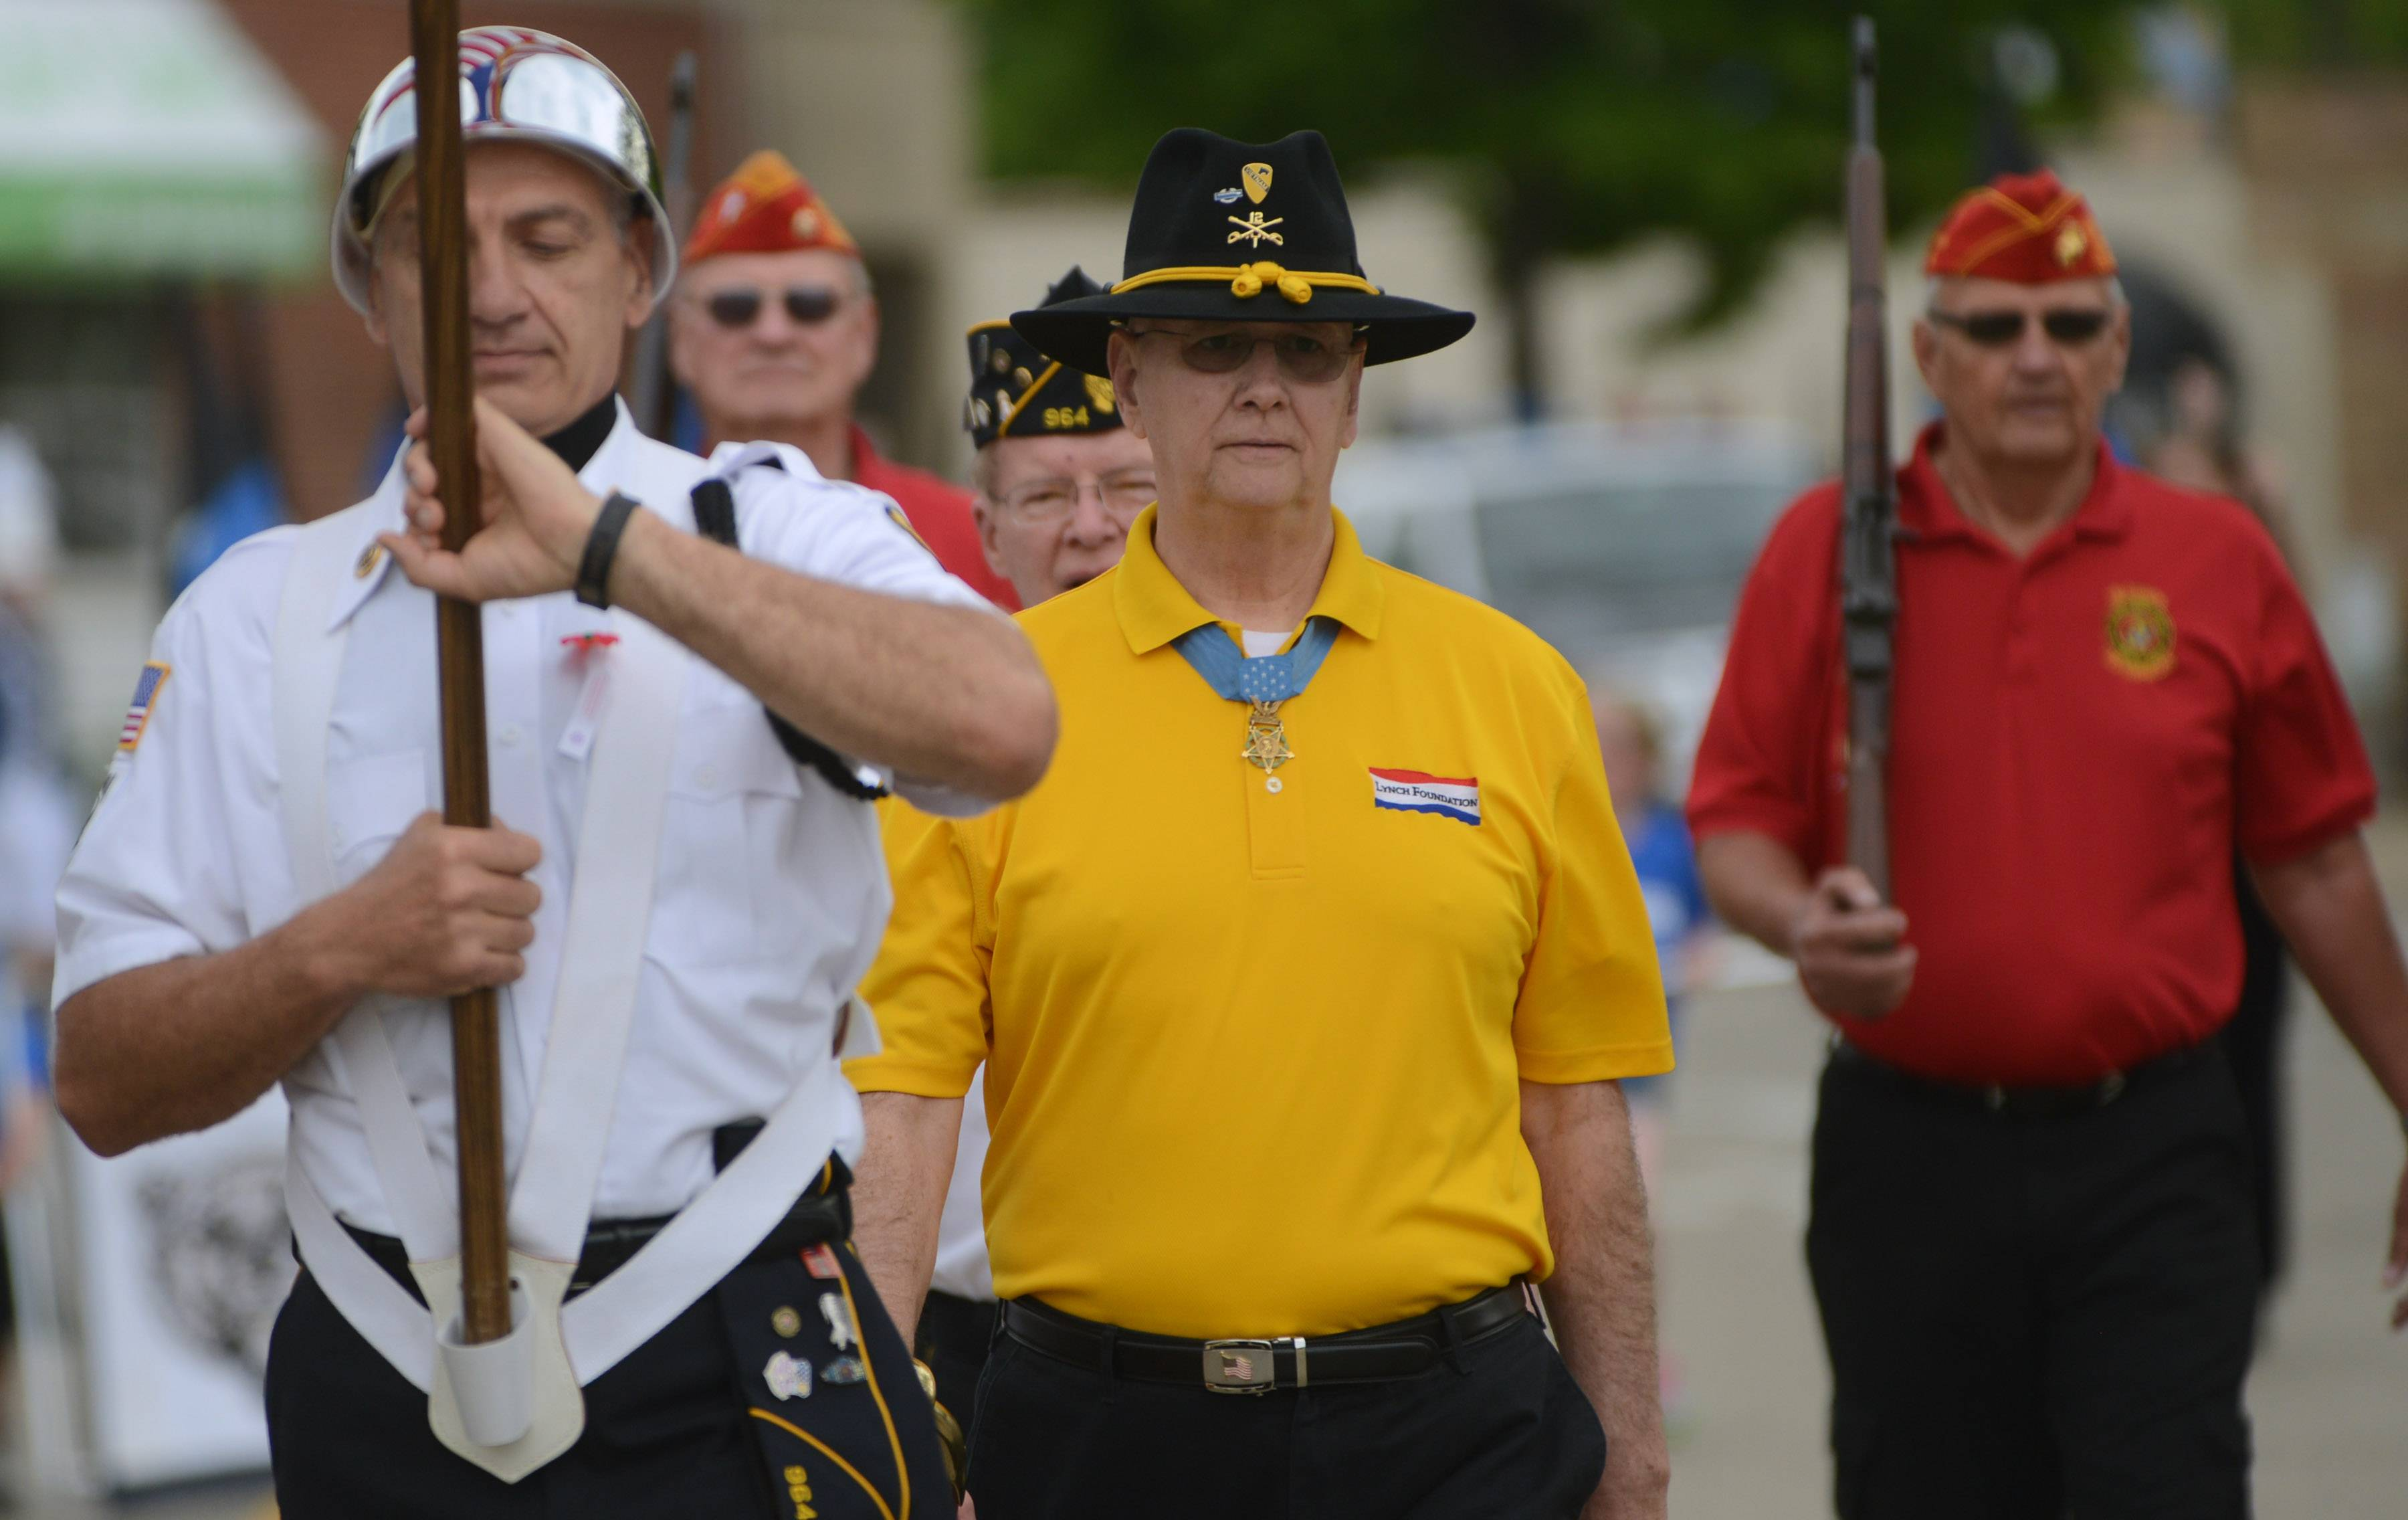 Medal of Honor recipient Allen J. Lynch of Gurnee walks in the Lake Zurich Memorial Day parade Monday.